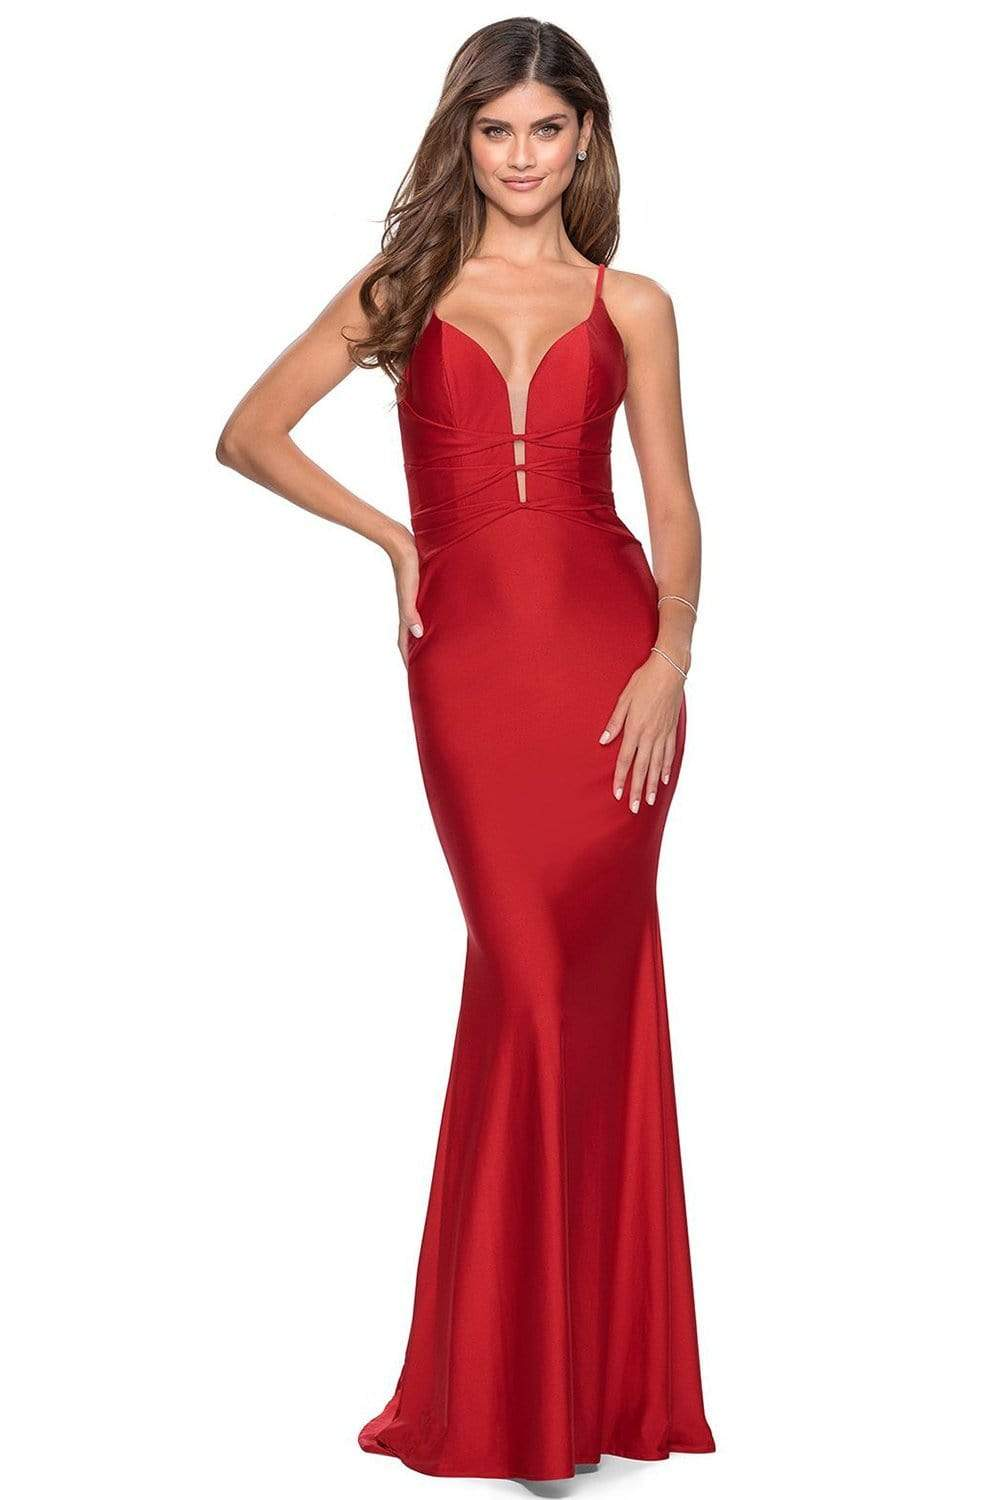 La Femme - Strappy Plunging V-neck Jersey Trumpet Dress 28574SC - 2 pc Red In Size 10 Available CCSALE 10 / Red